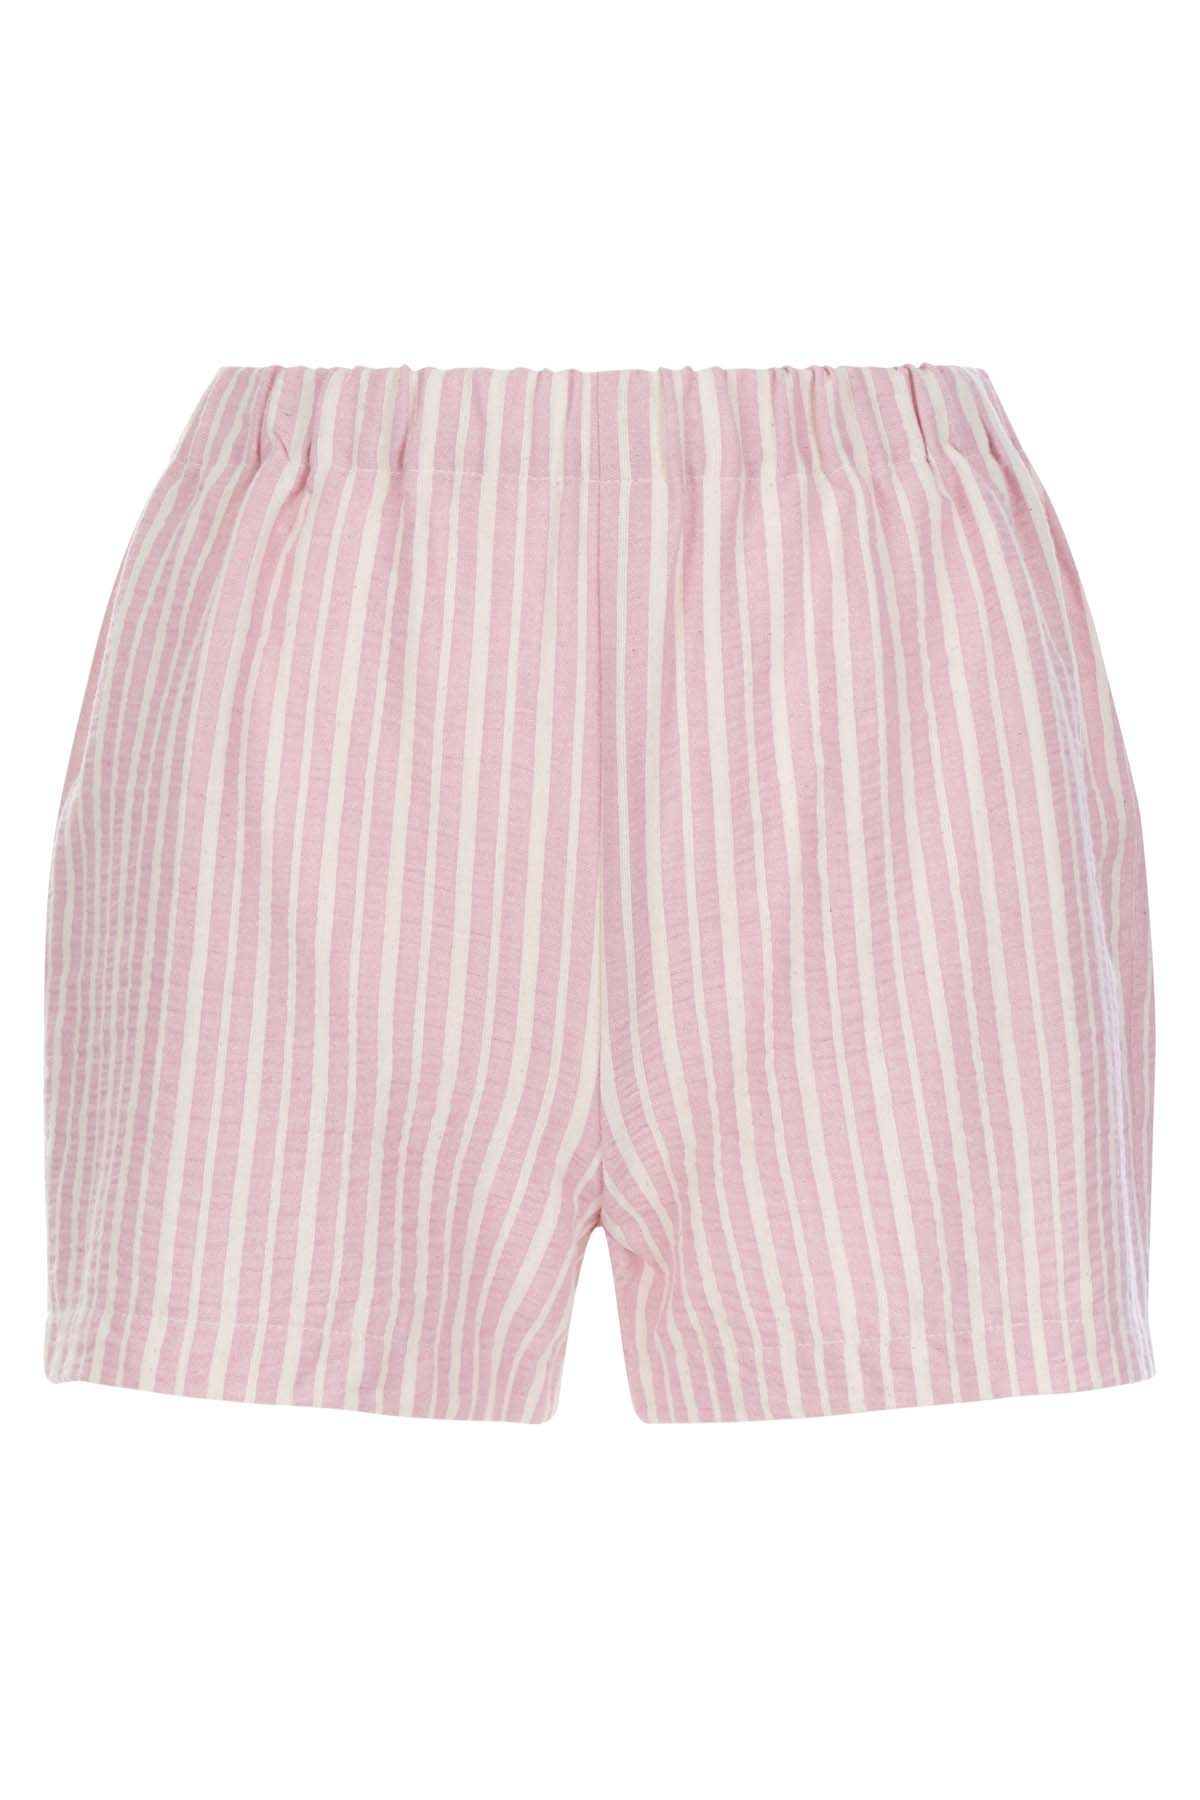 Curious Cotton Stripe Shorts in Pink